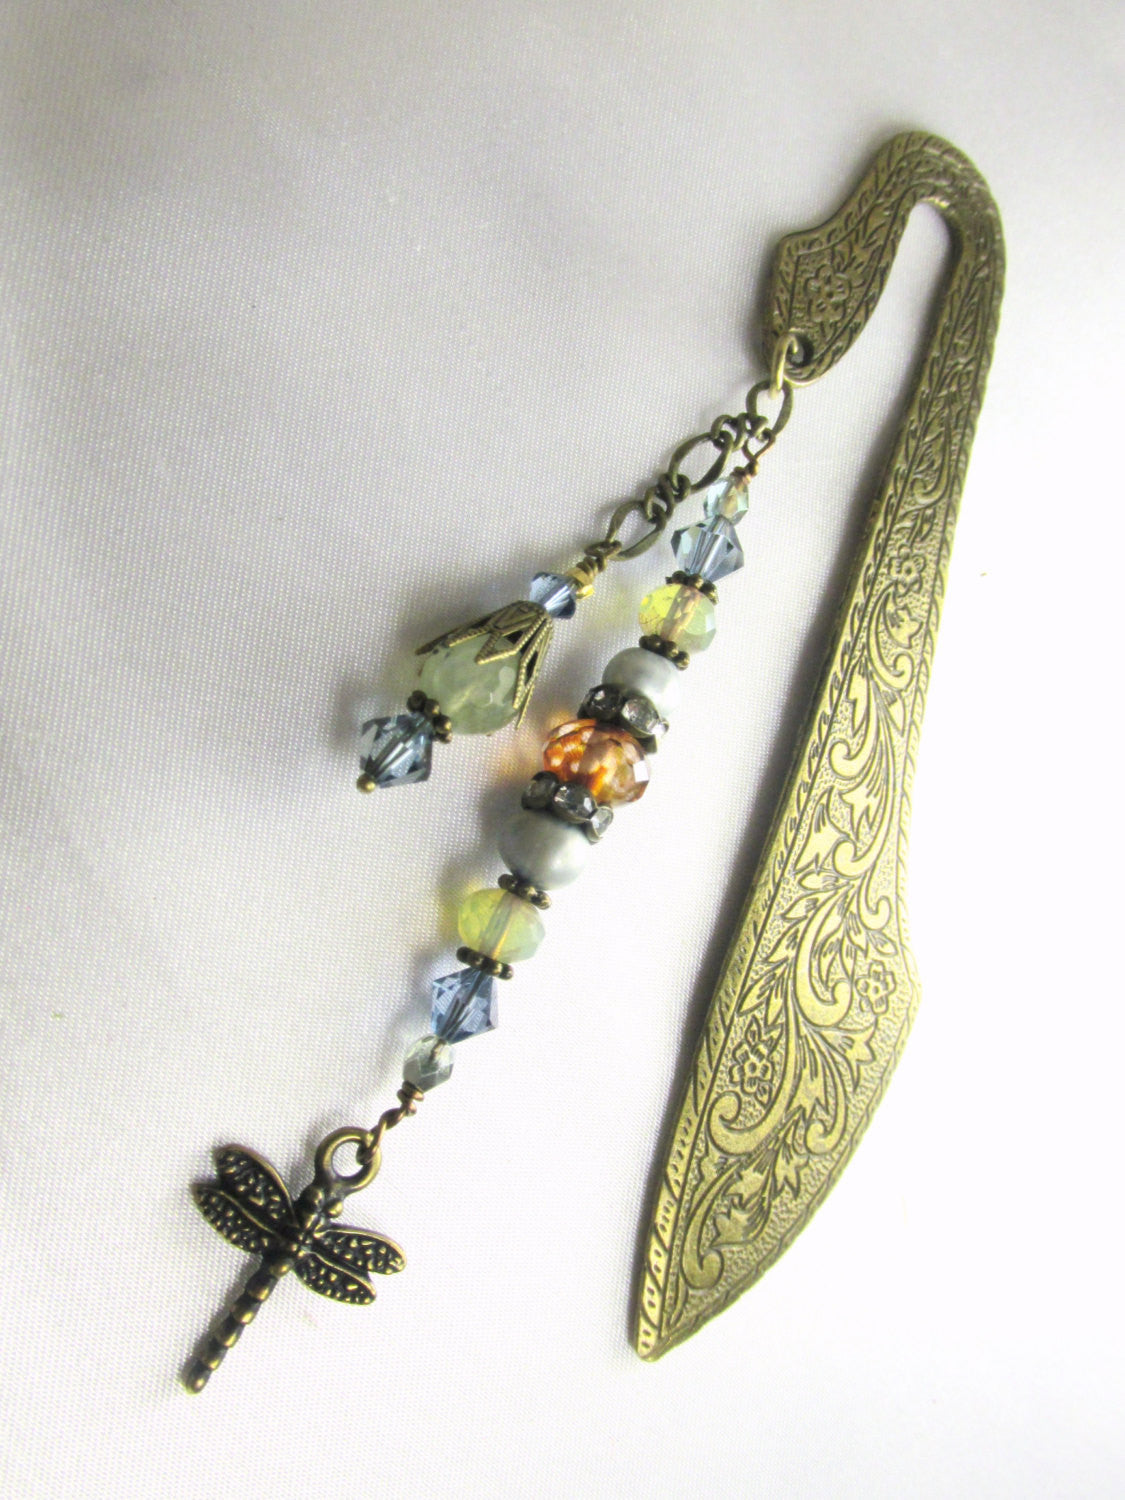 Dragonfly Blue, Green, Brown Brass Beaded Bookmark with Prehinite Gemstones, Freshwater Pearsl and Swarovski Crystals - Odyssey Creations